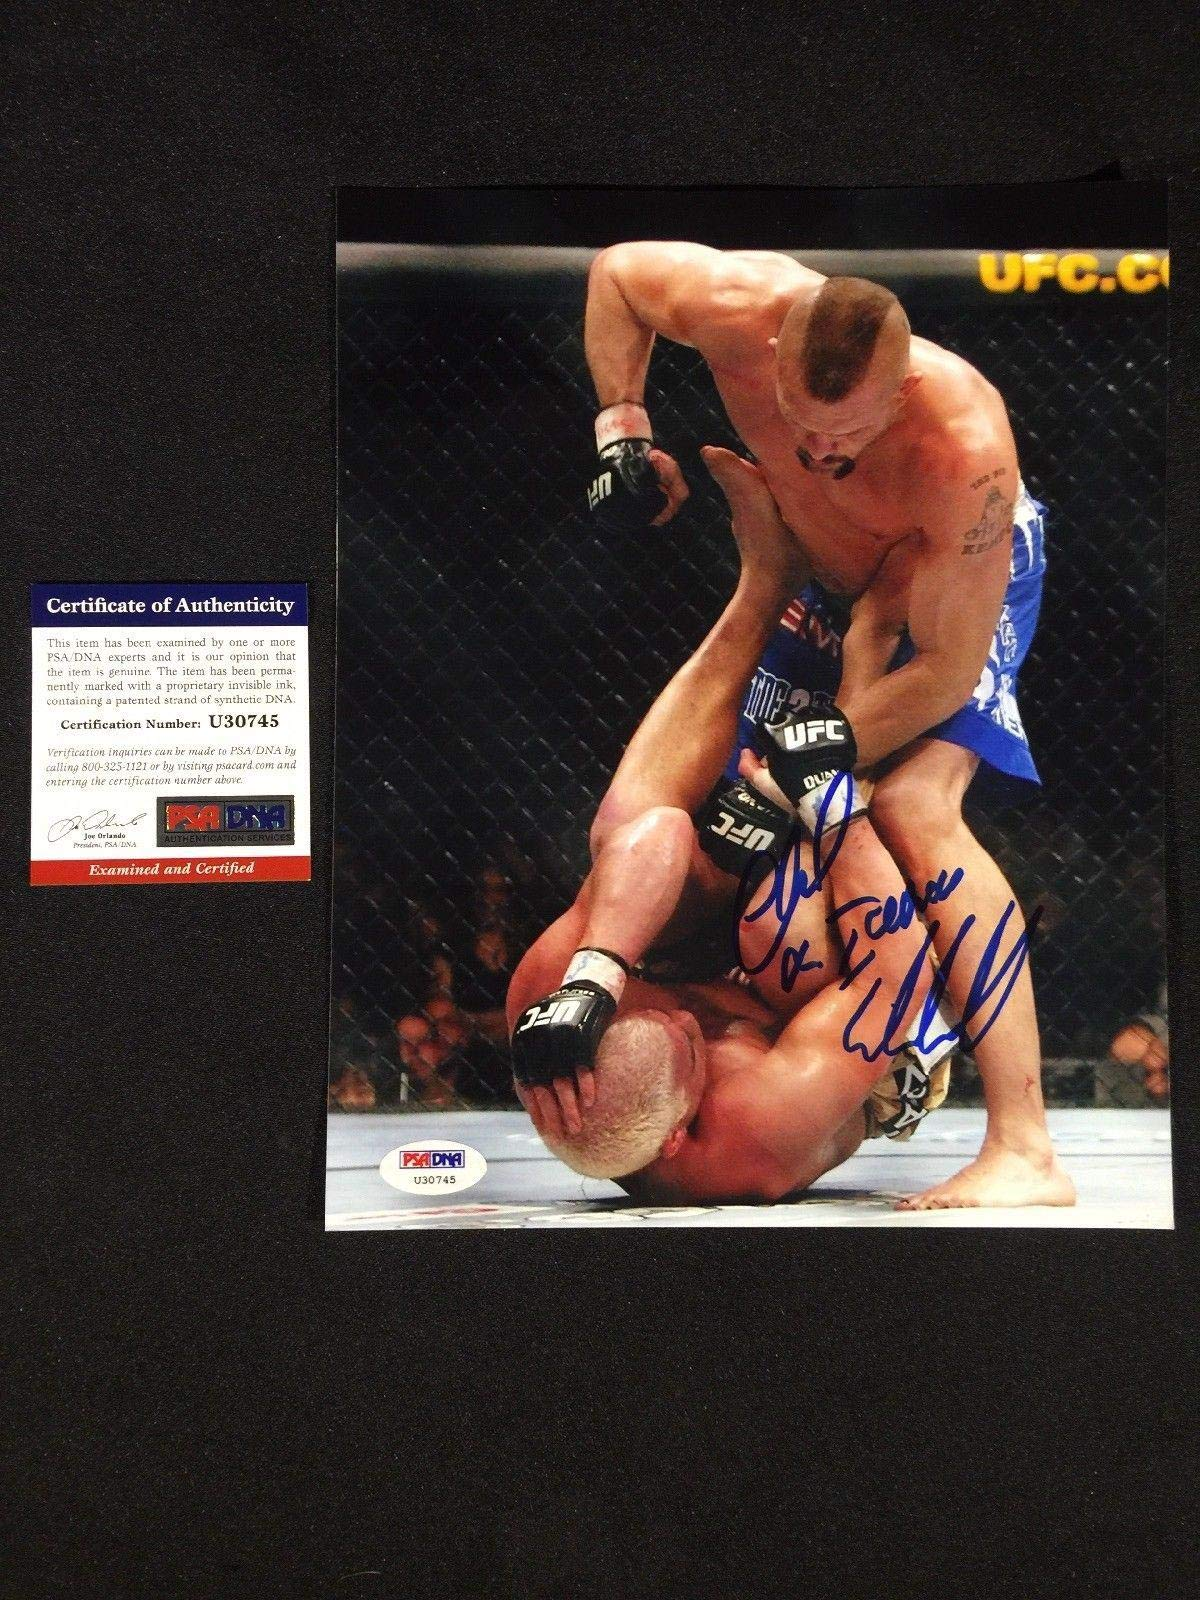 Iceman Chuck Liddell Signed 8x10 8 x 10 Photo UFC #U30745 PSA/DNA Certified Autographed UFC Photos